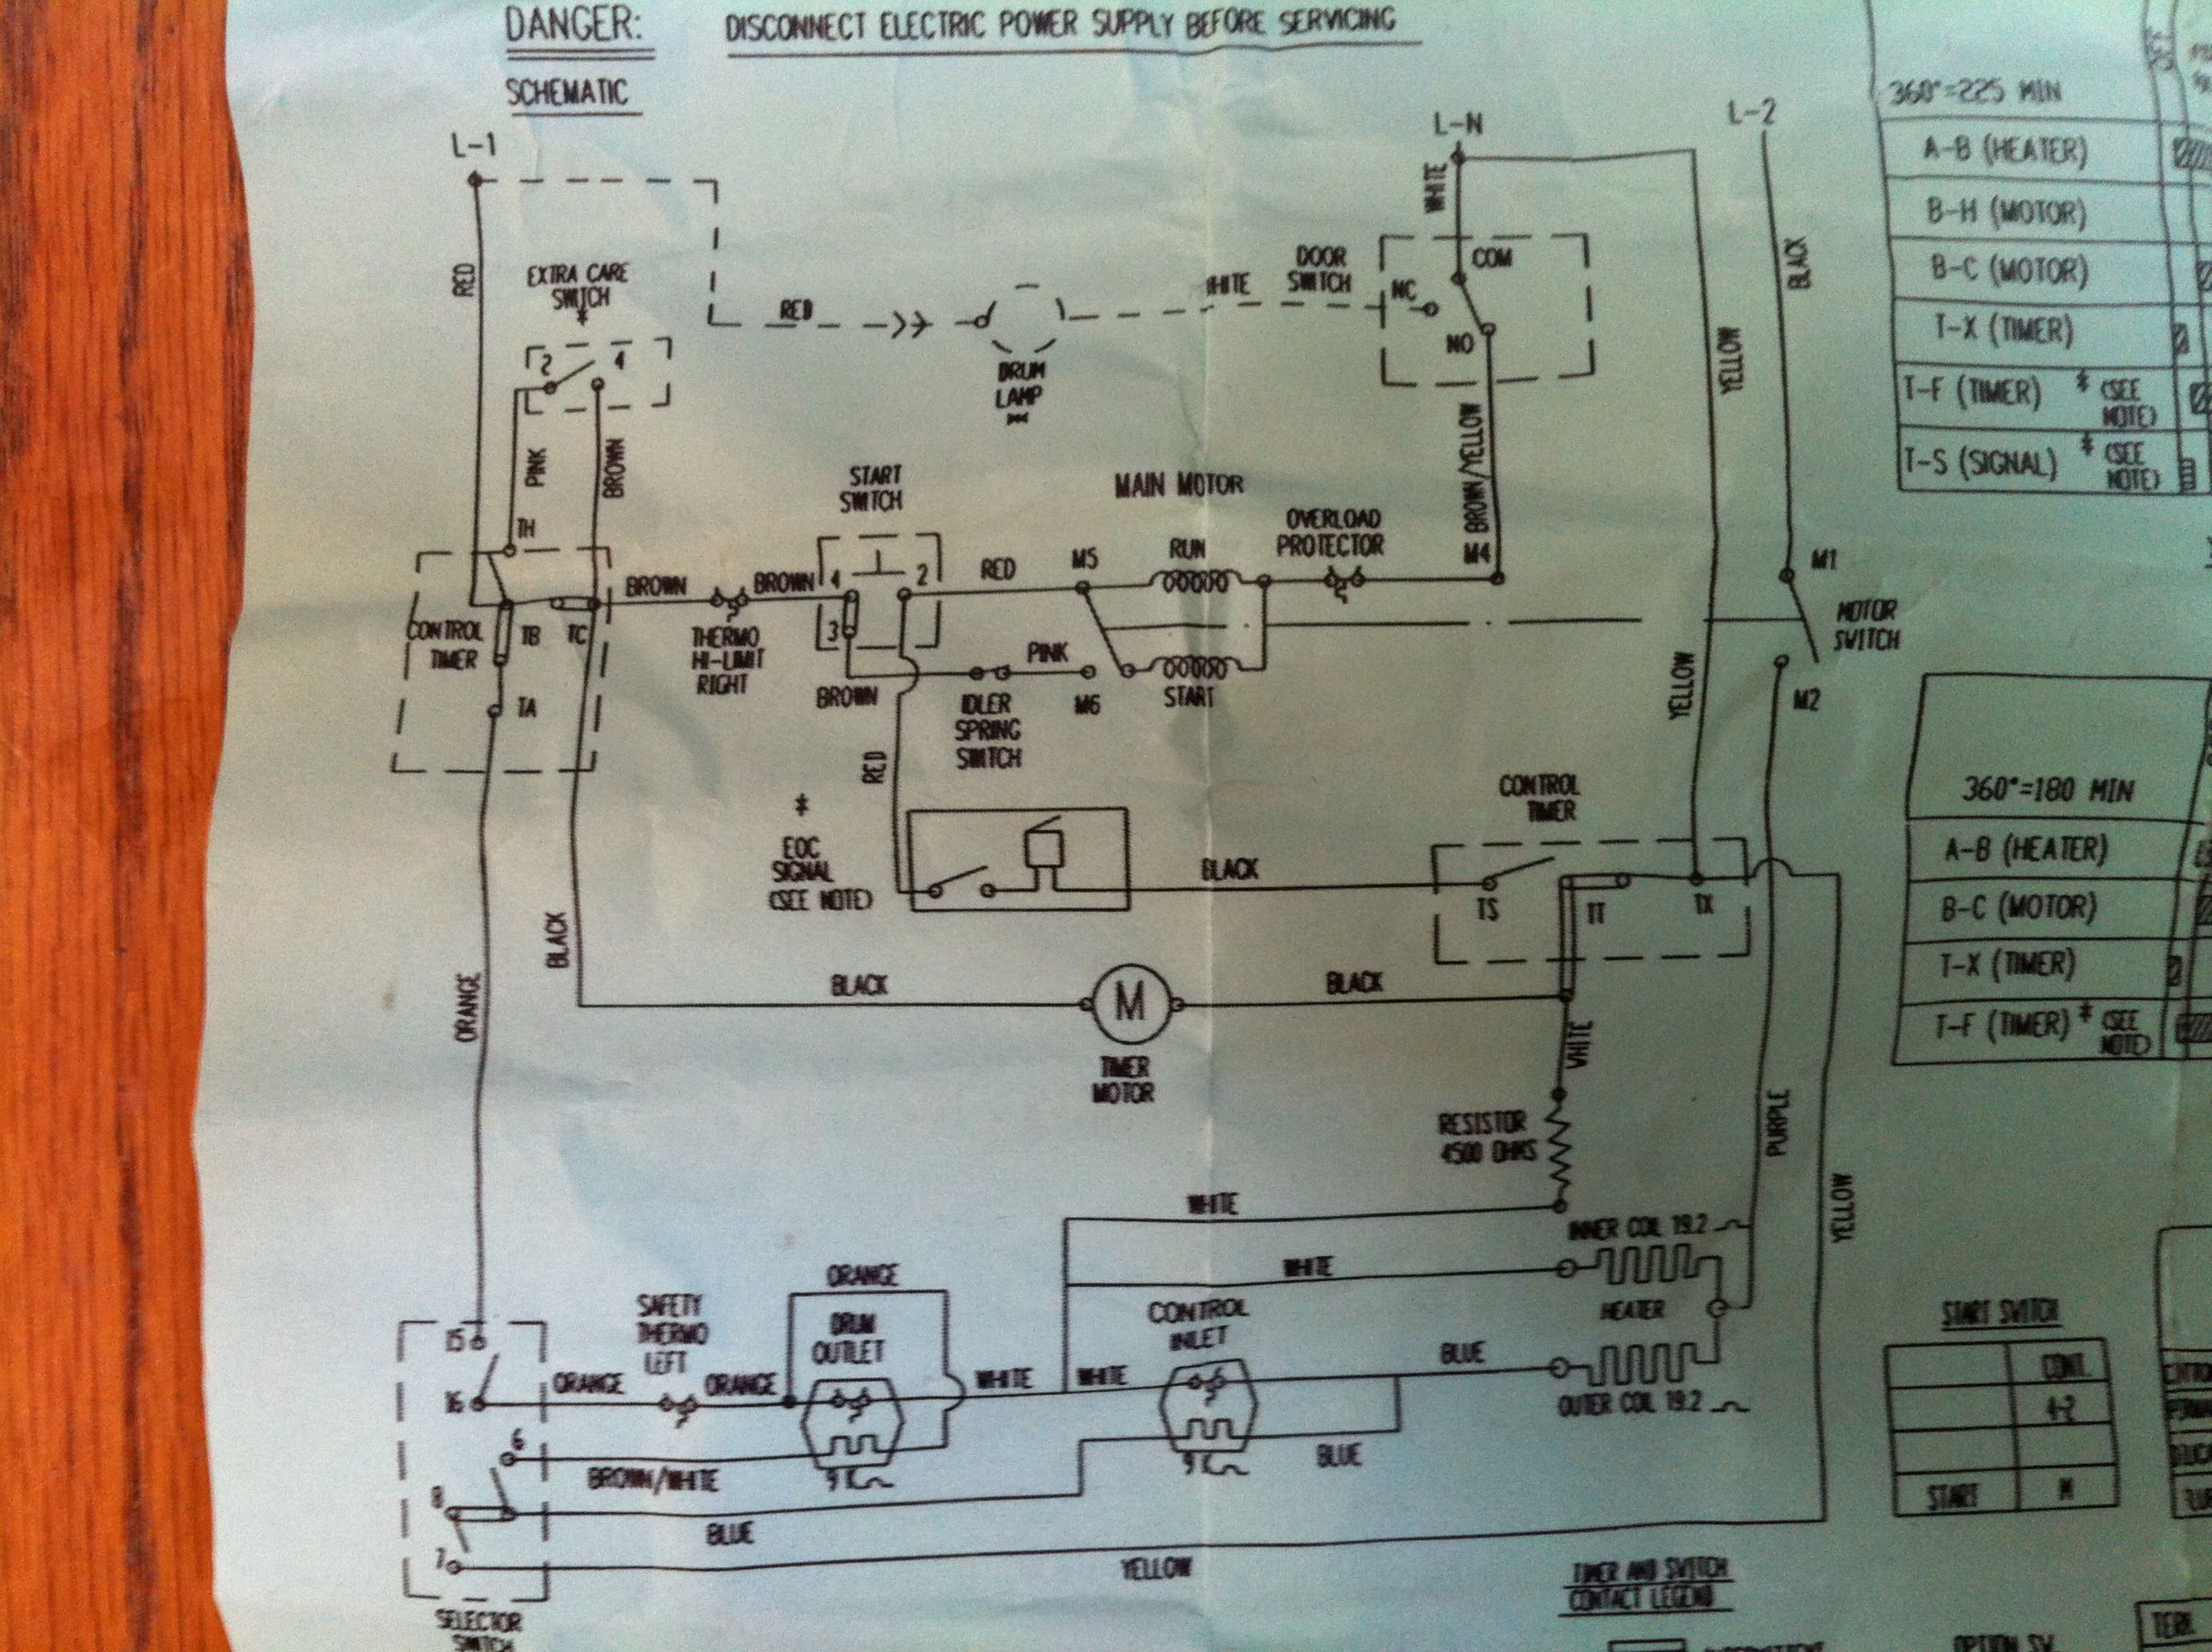 inglis dryer wiring diagram wireing diagrams electric dryers blow drying 220 volt electric dryer wiring diagram by sanja